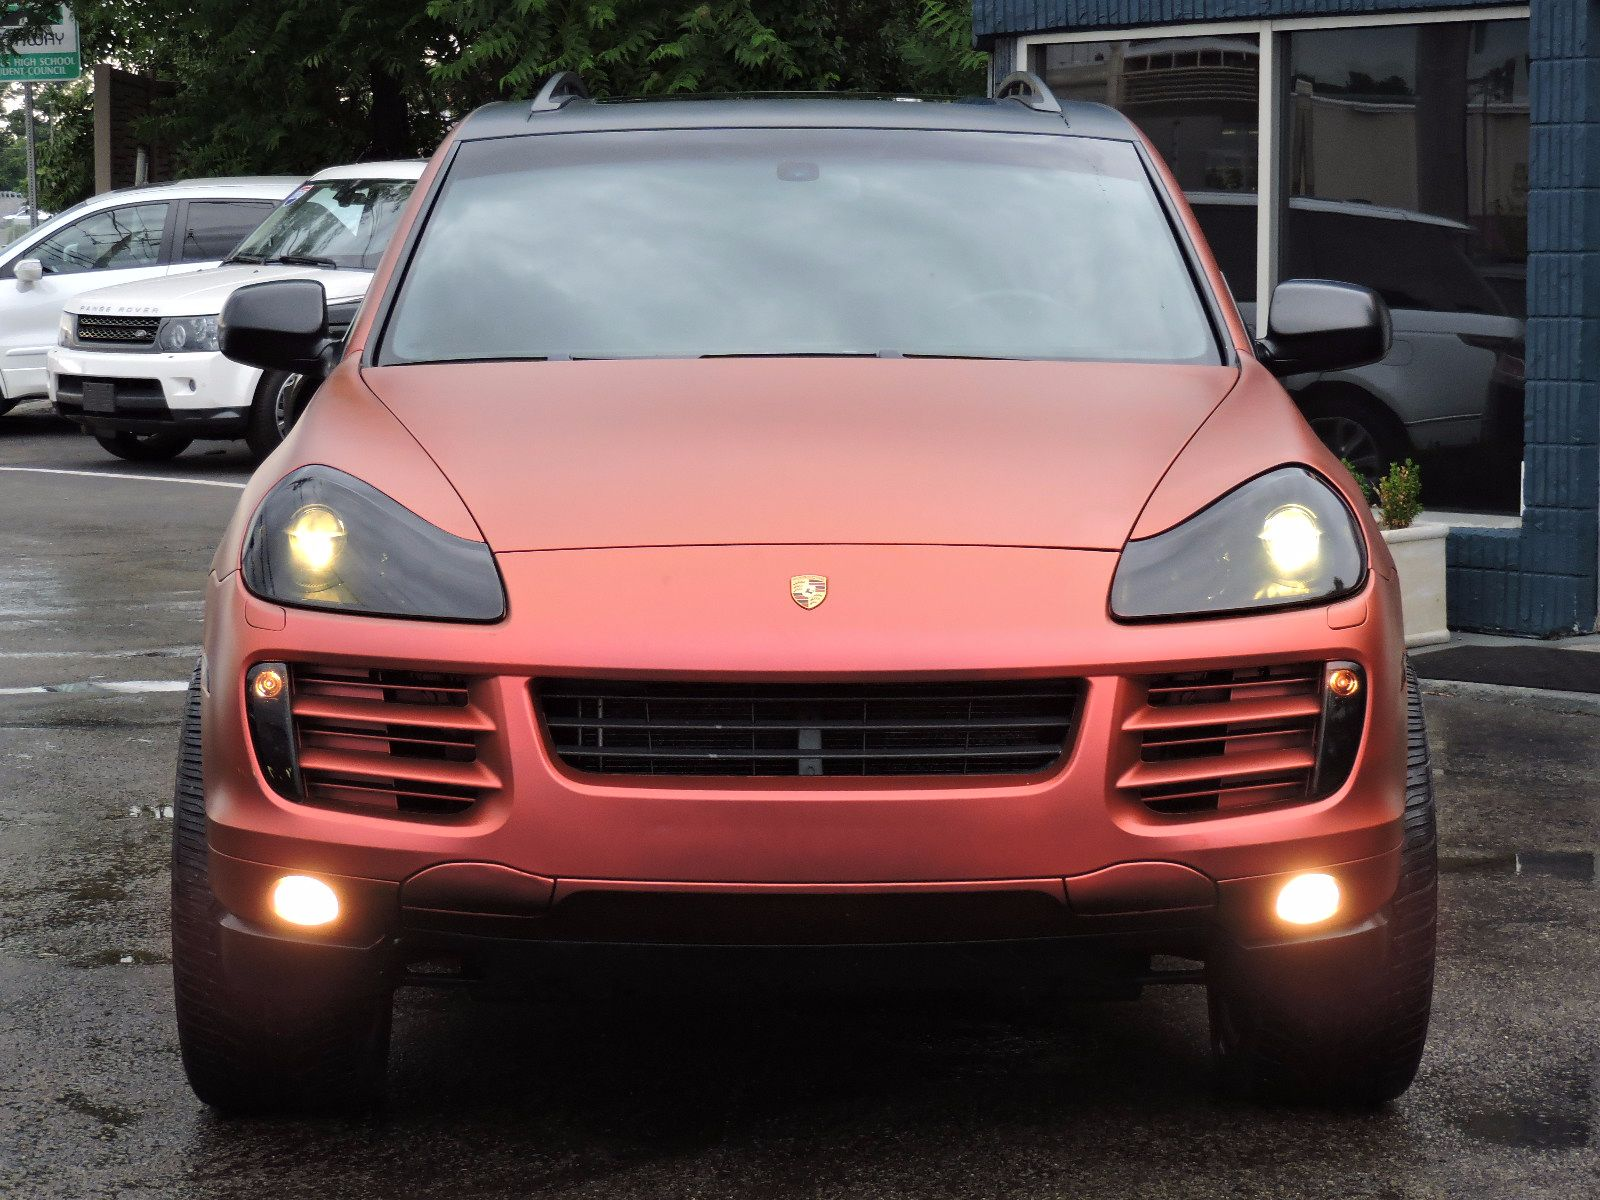 used 2008 porsche cayenne s wsunroof at saugus auto mall. Black Bedroom Furniture Sets. Home Design Ideas